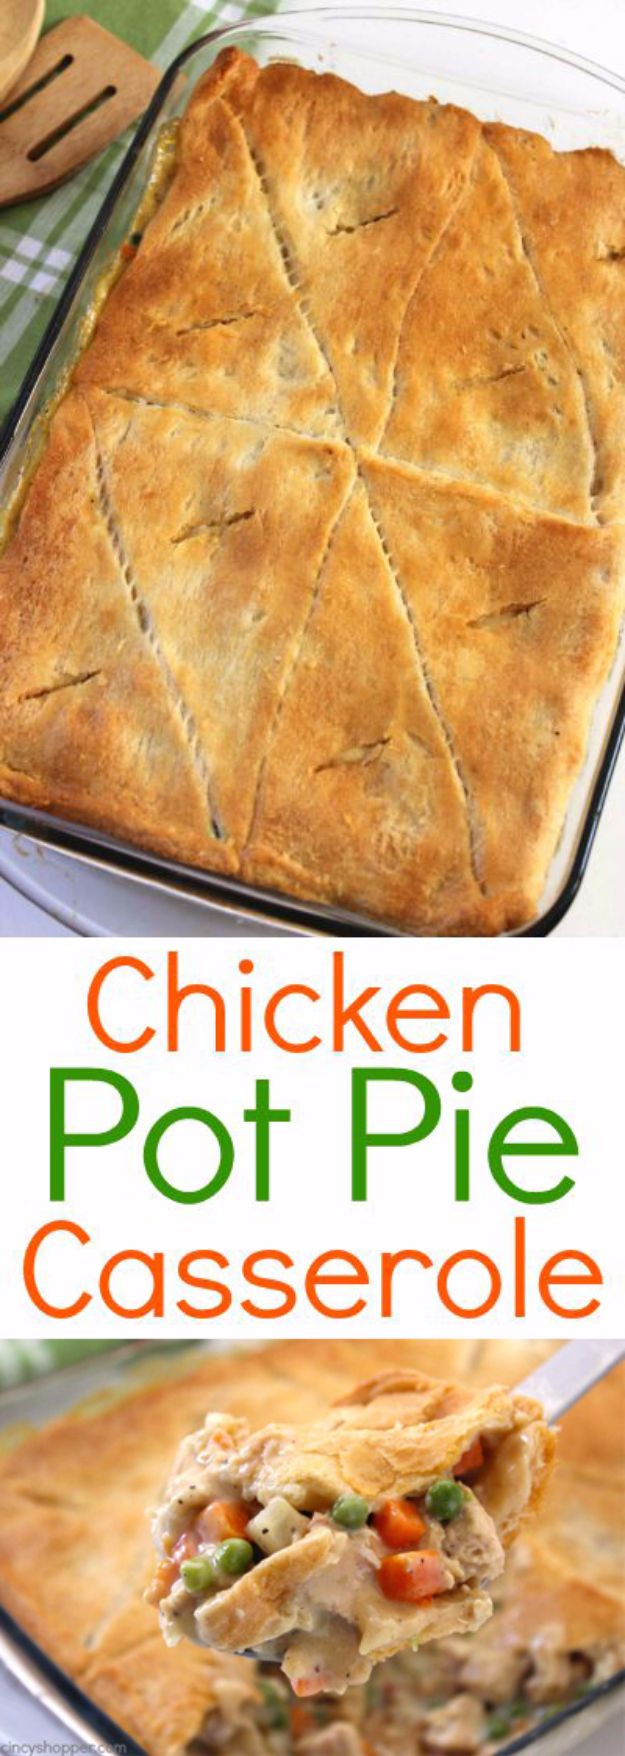 Best Crescent Roll Recipes - Chicken Pot Pie Casserole - Easy Homemade Dinner Recipe Ideas With Cresent Rolls, Breakfast, Snack, Appetizers and Dessert - With Chicken and Ground Beef, Hot Dogs, Pizza, Garlic Taco, Sweet Desserts #recipes